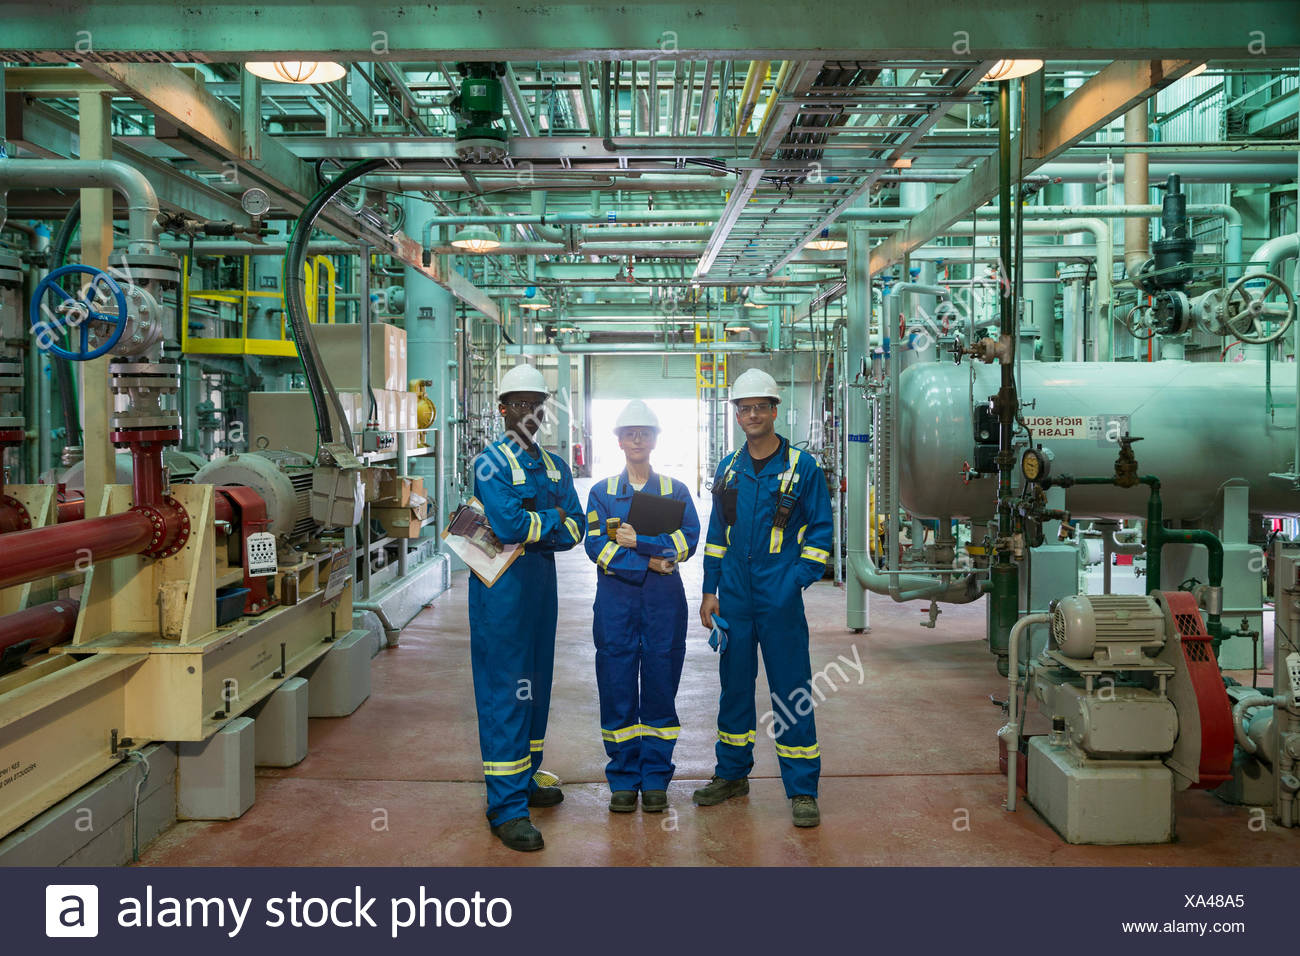 Portrait of workers in gas plant - Stock Image